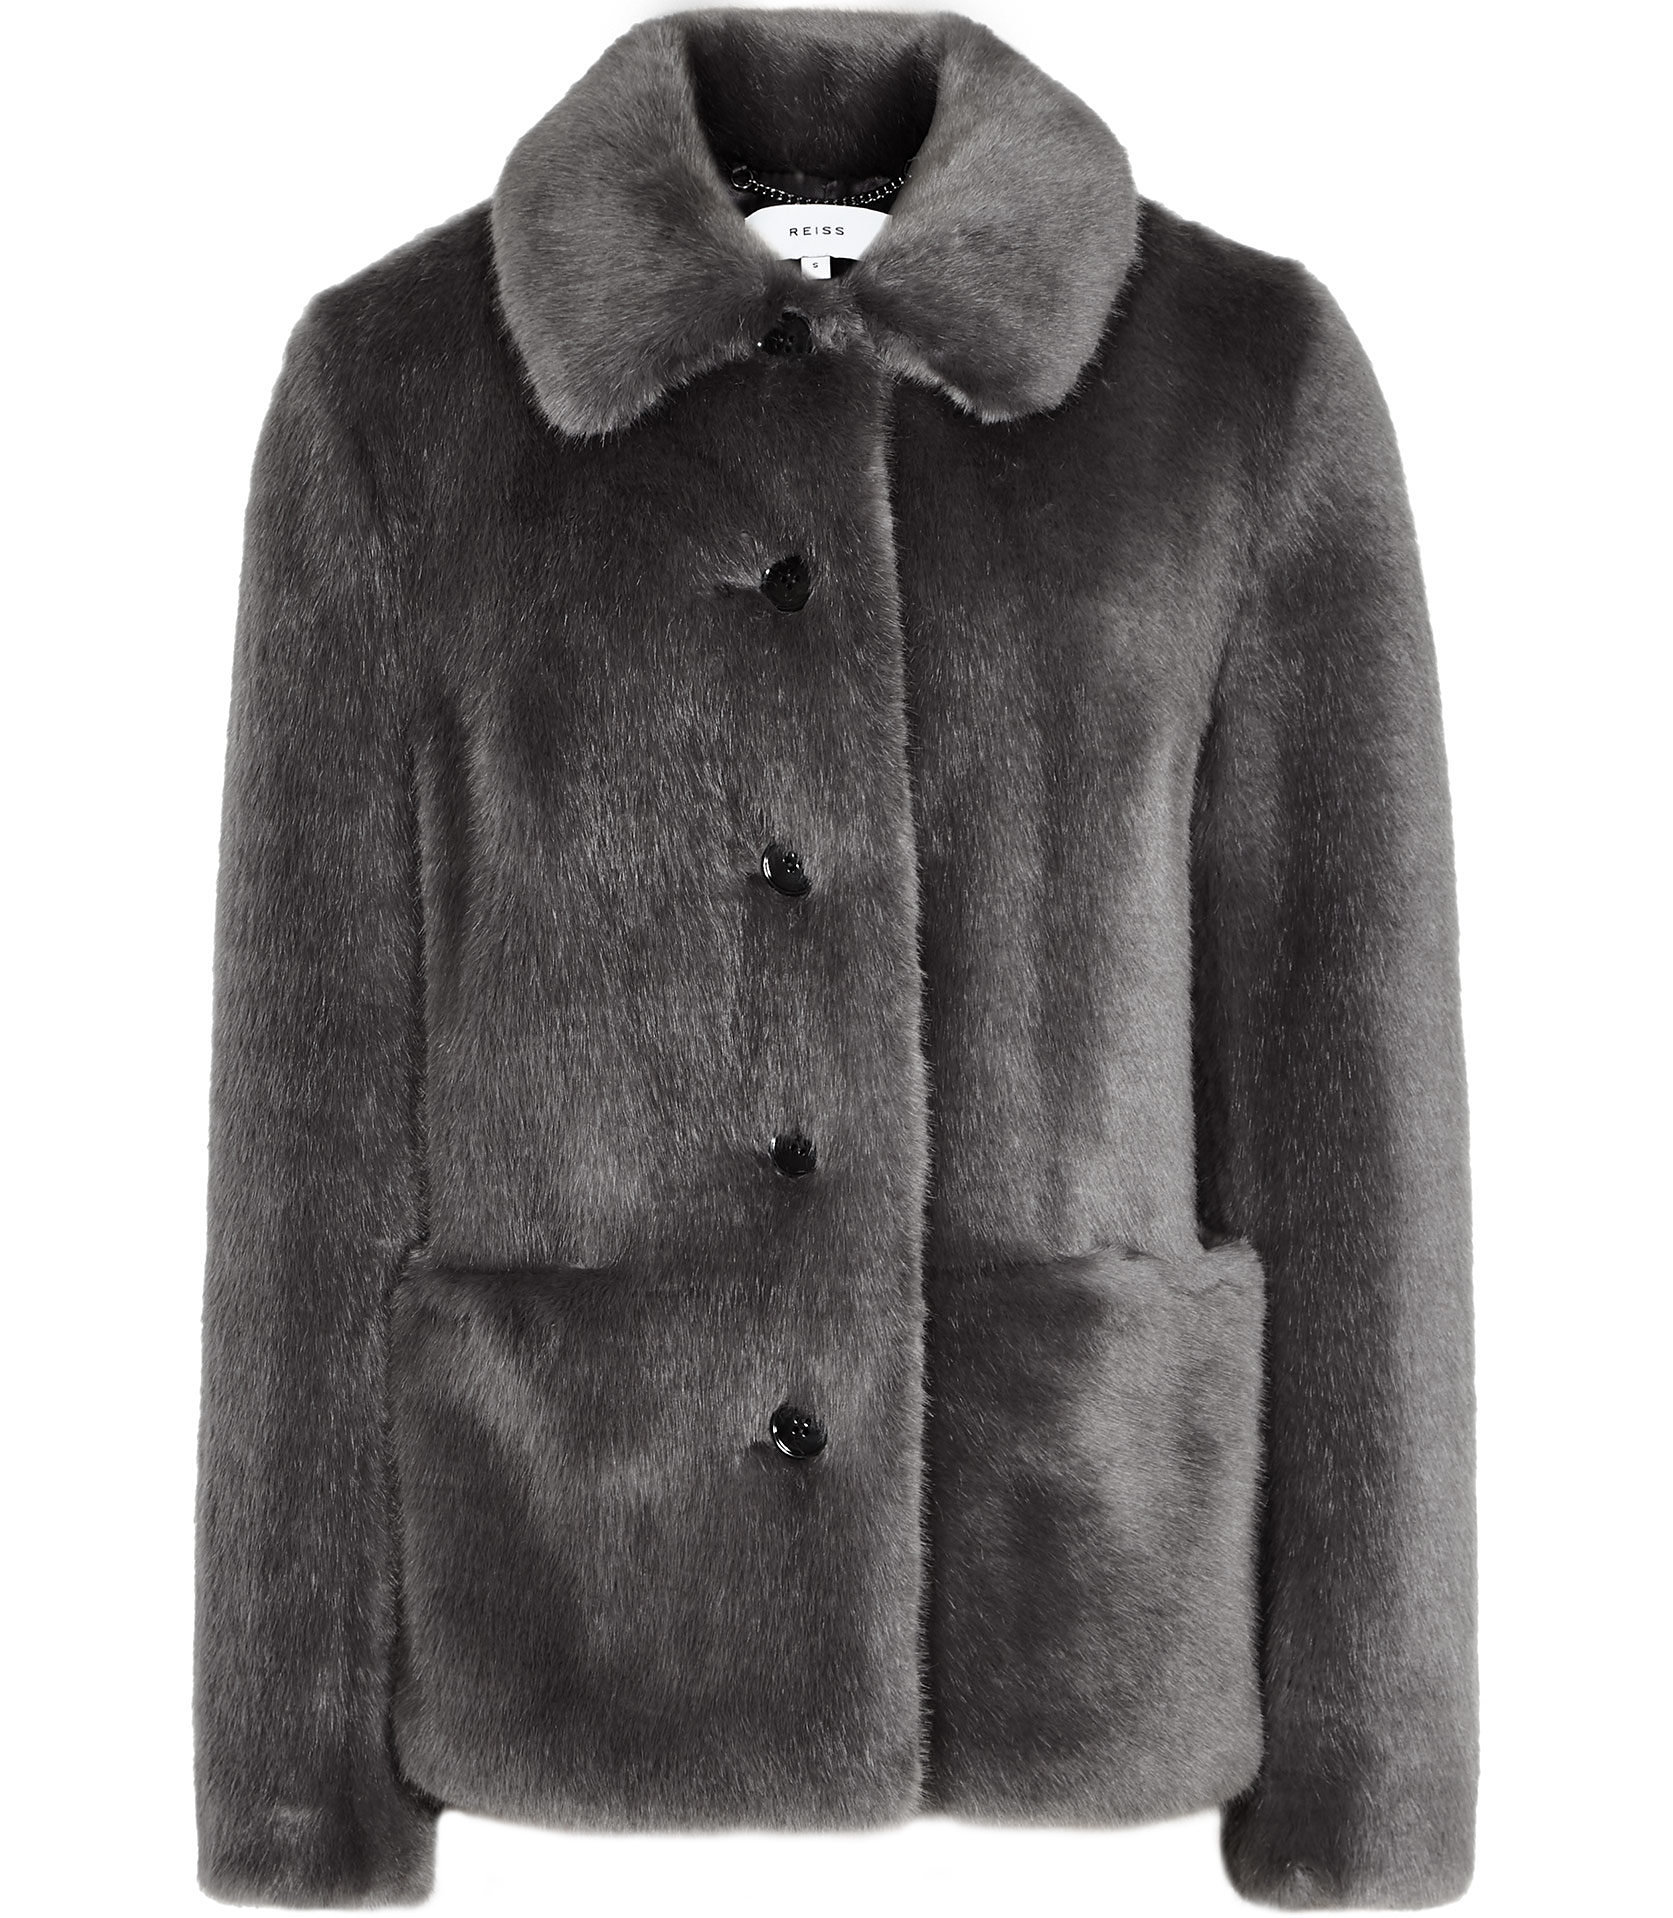 Was £325 Now £245 at Reiss